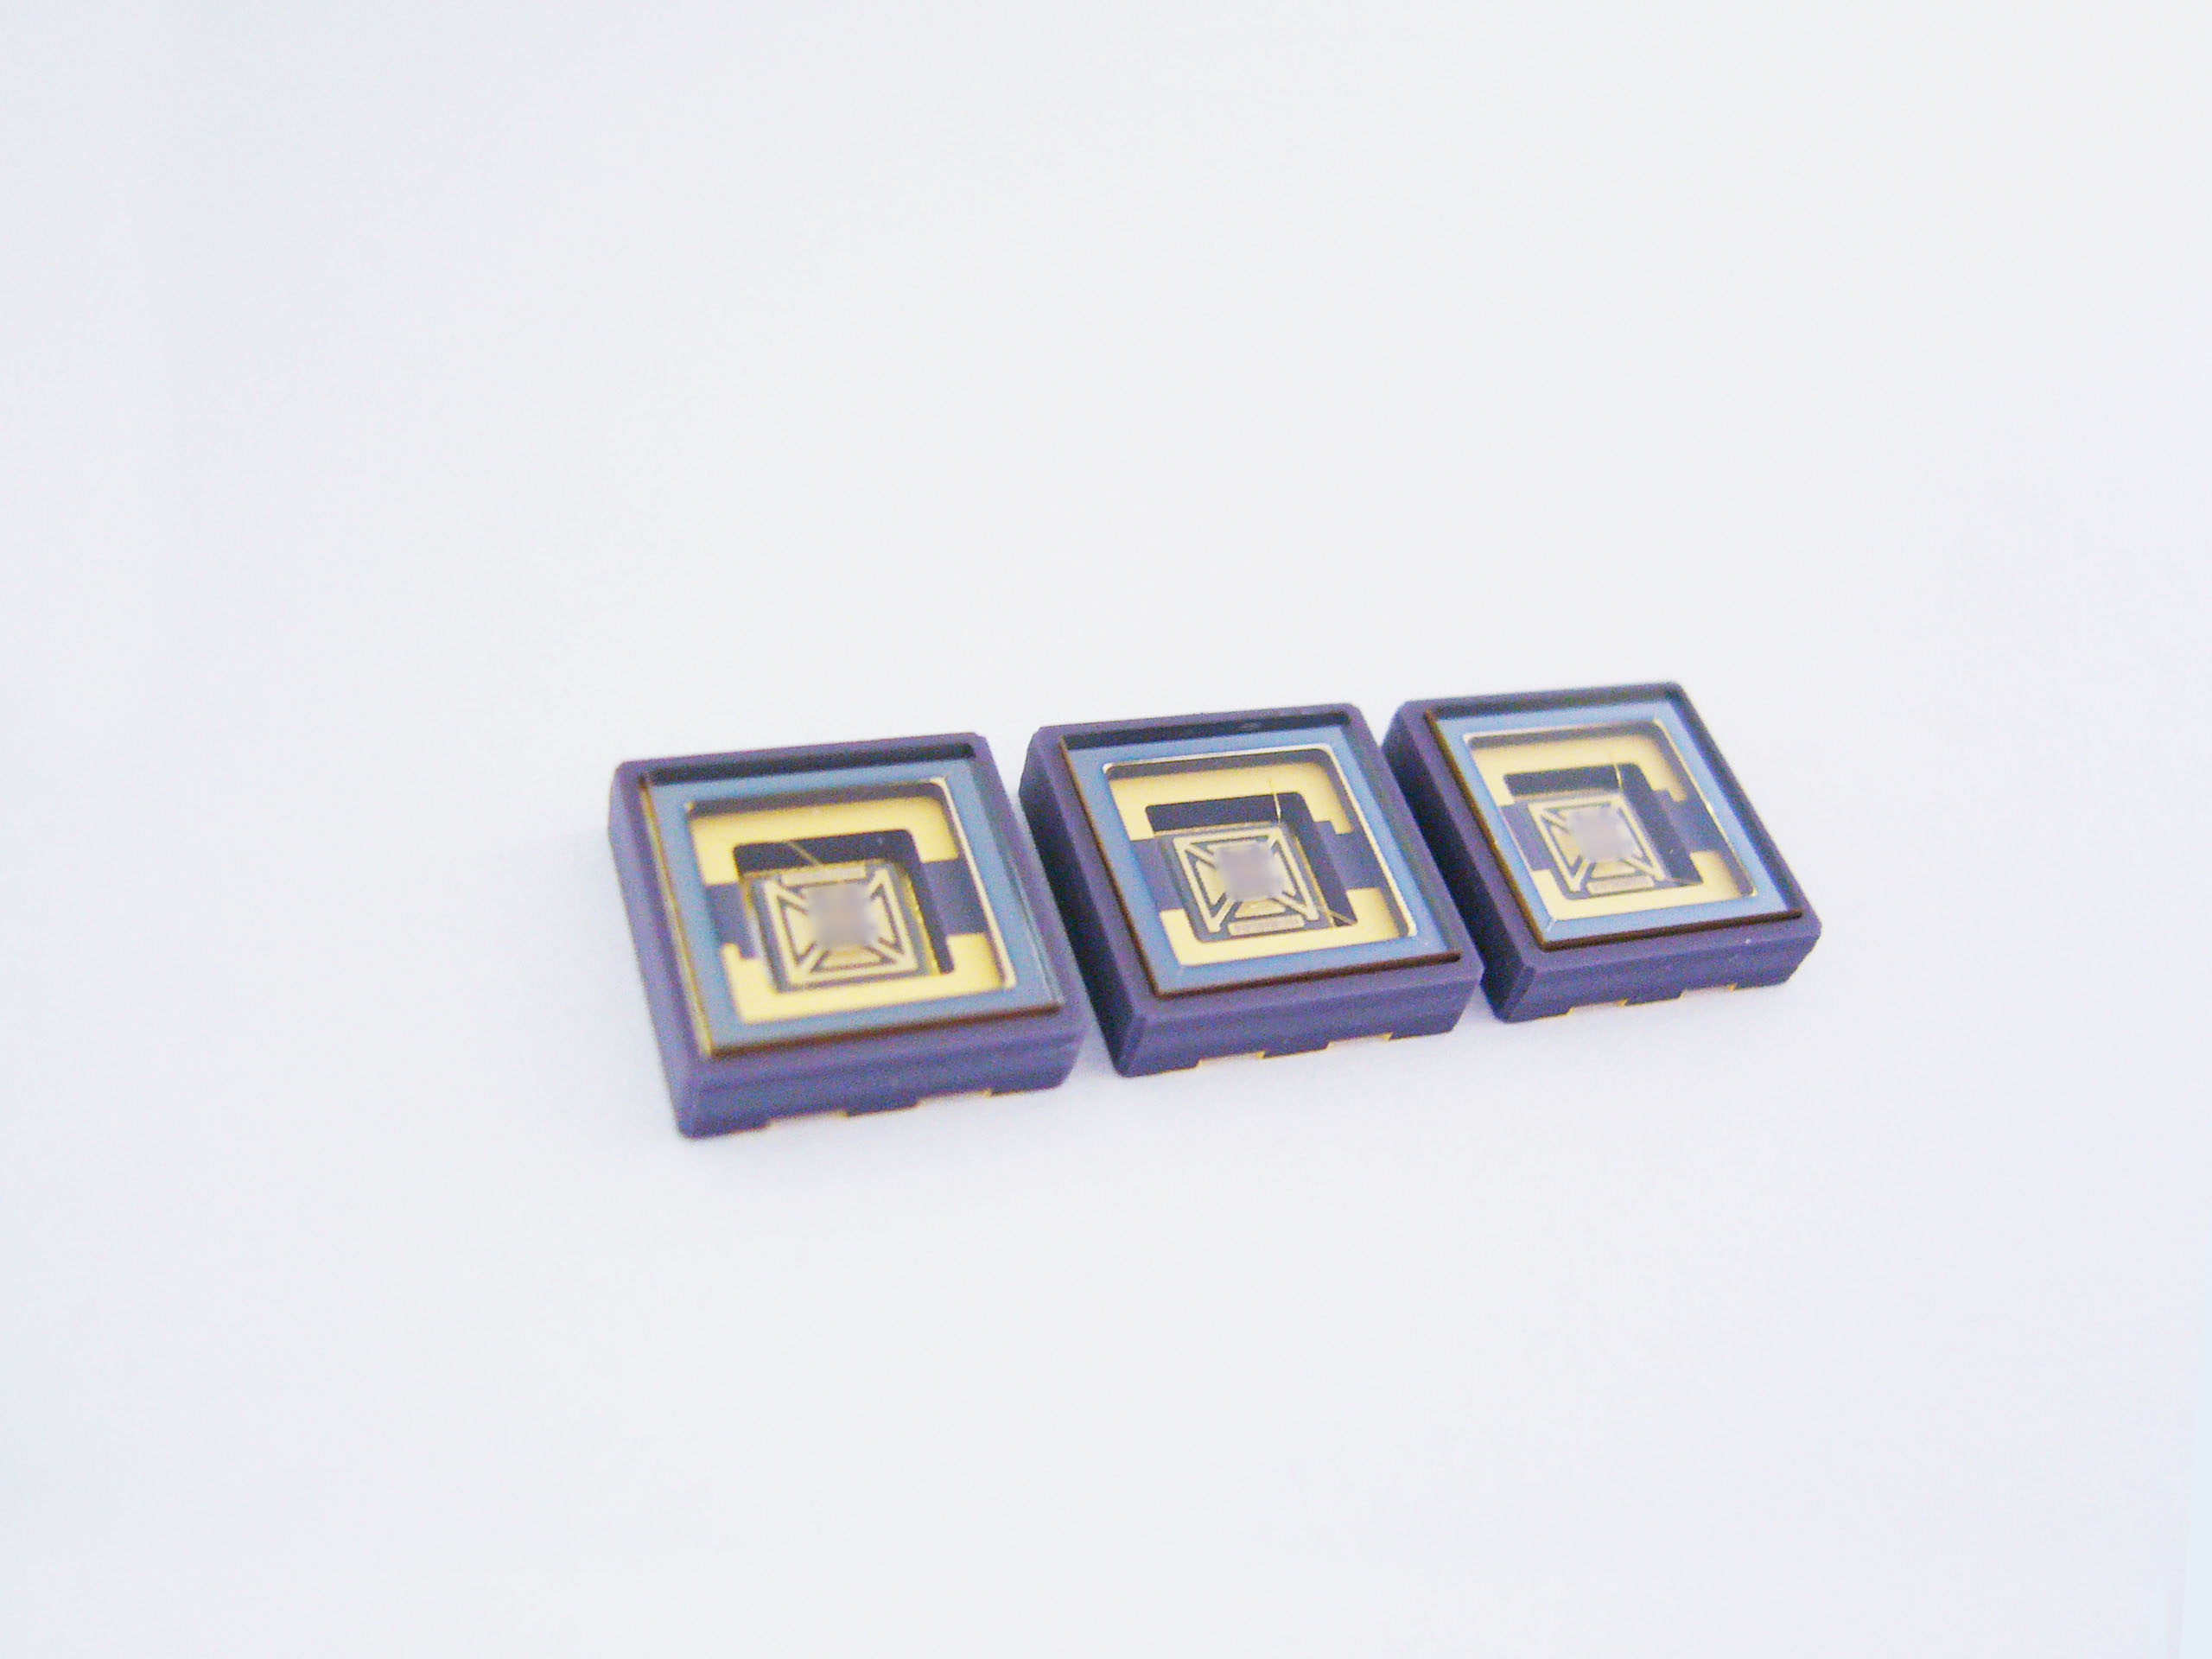 NIKKISO Deep UV LED Package (Photo: Business Wire)